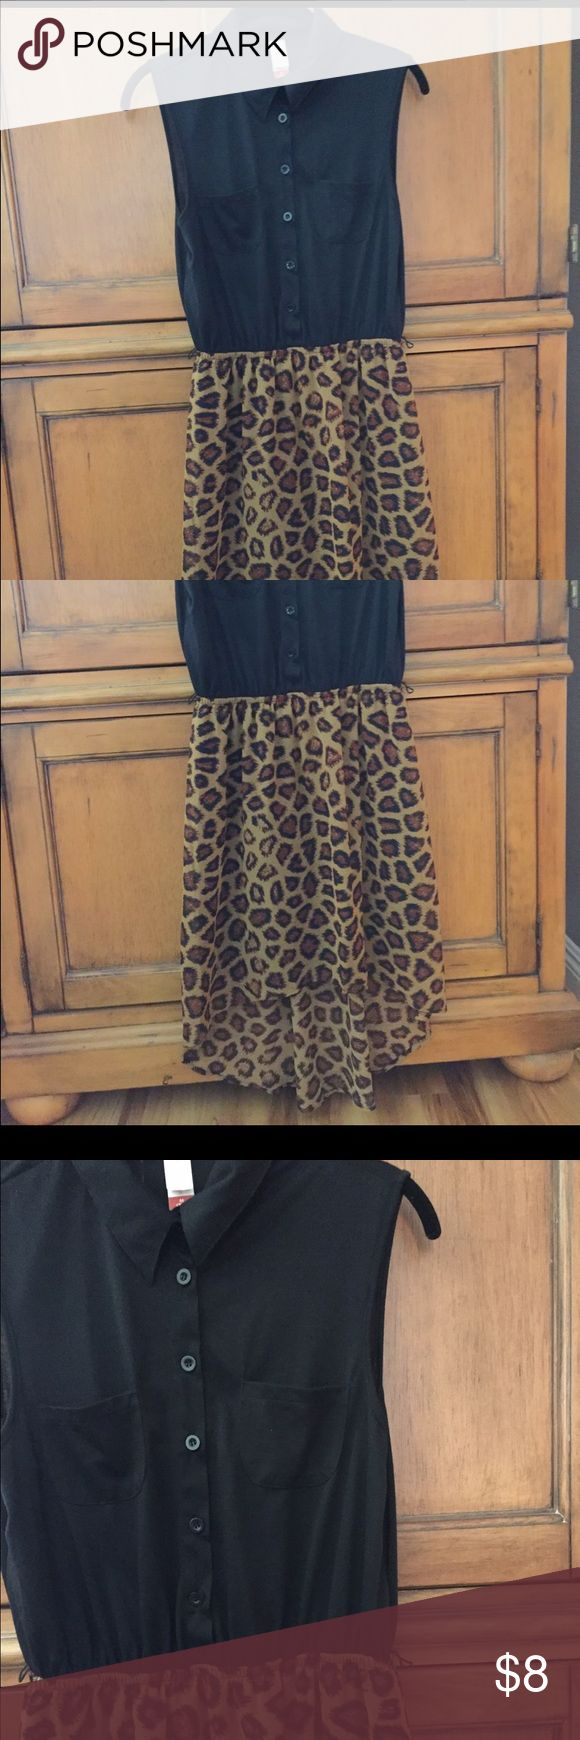 A cheetah dress! Super cute and comfortable! The dress is still in great condition! Cute, trendy and stylish! A dress that can go with anything.. really! Dresses High Low